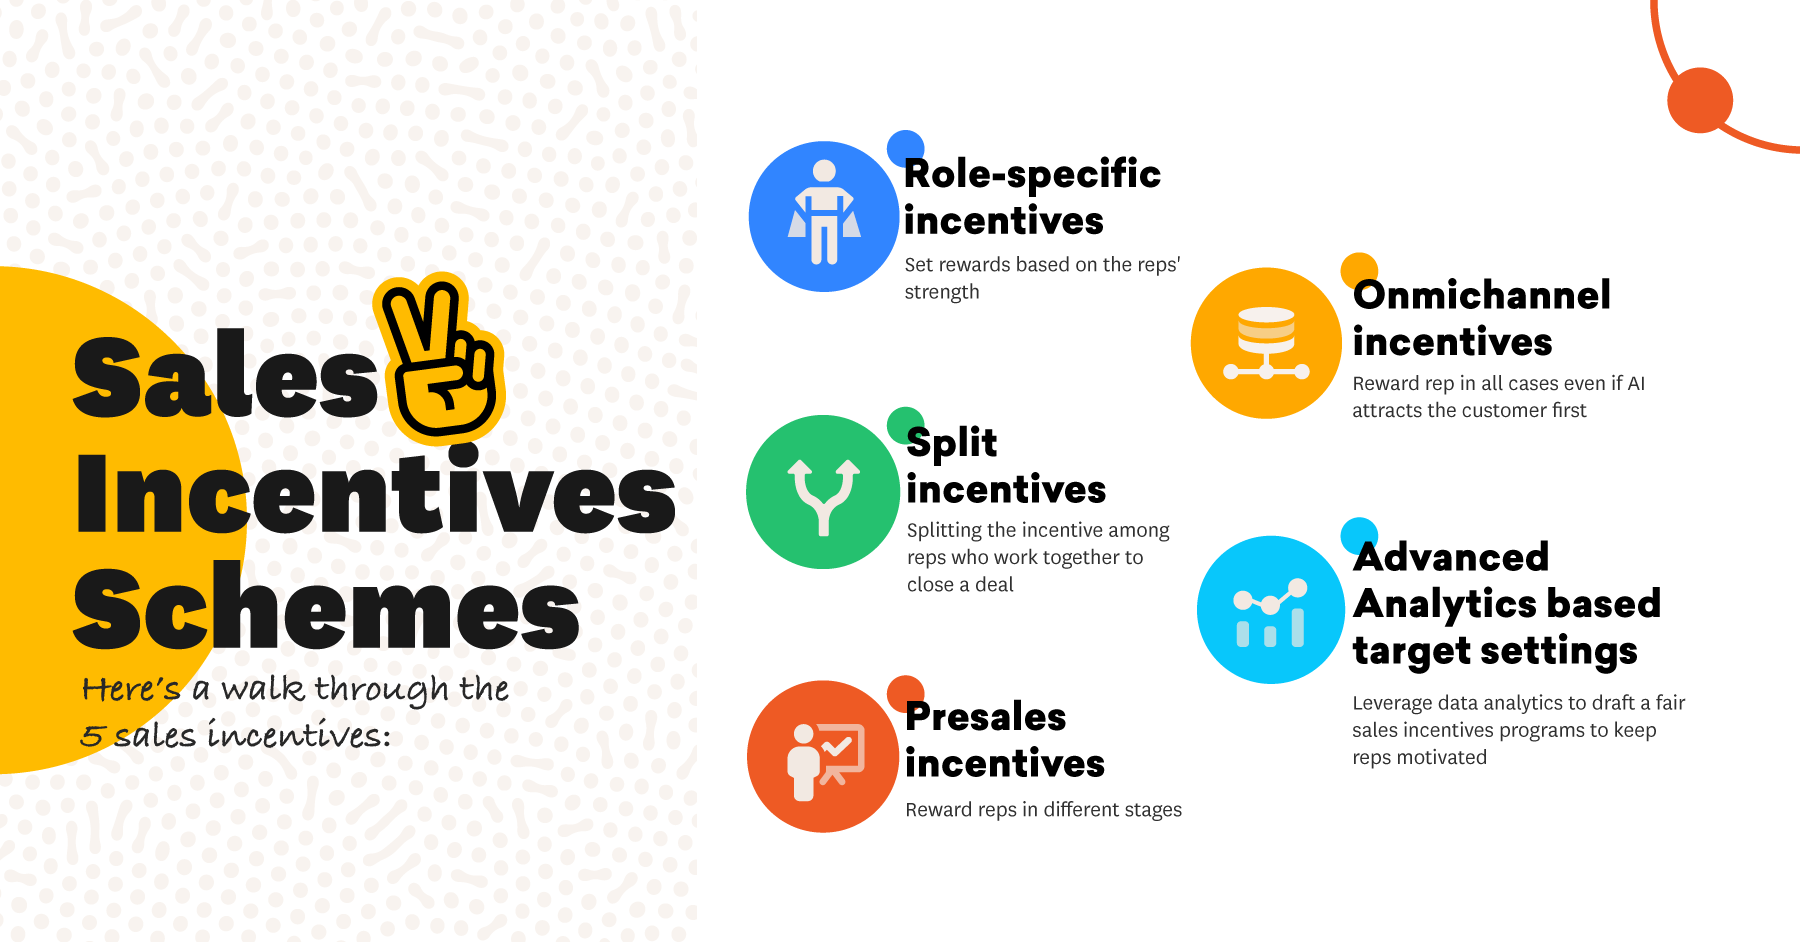 Types of Sales Incentive Schemes